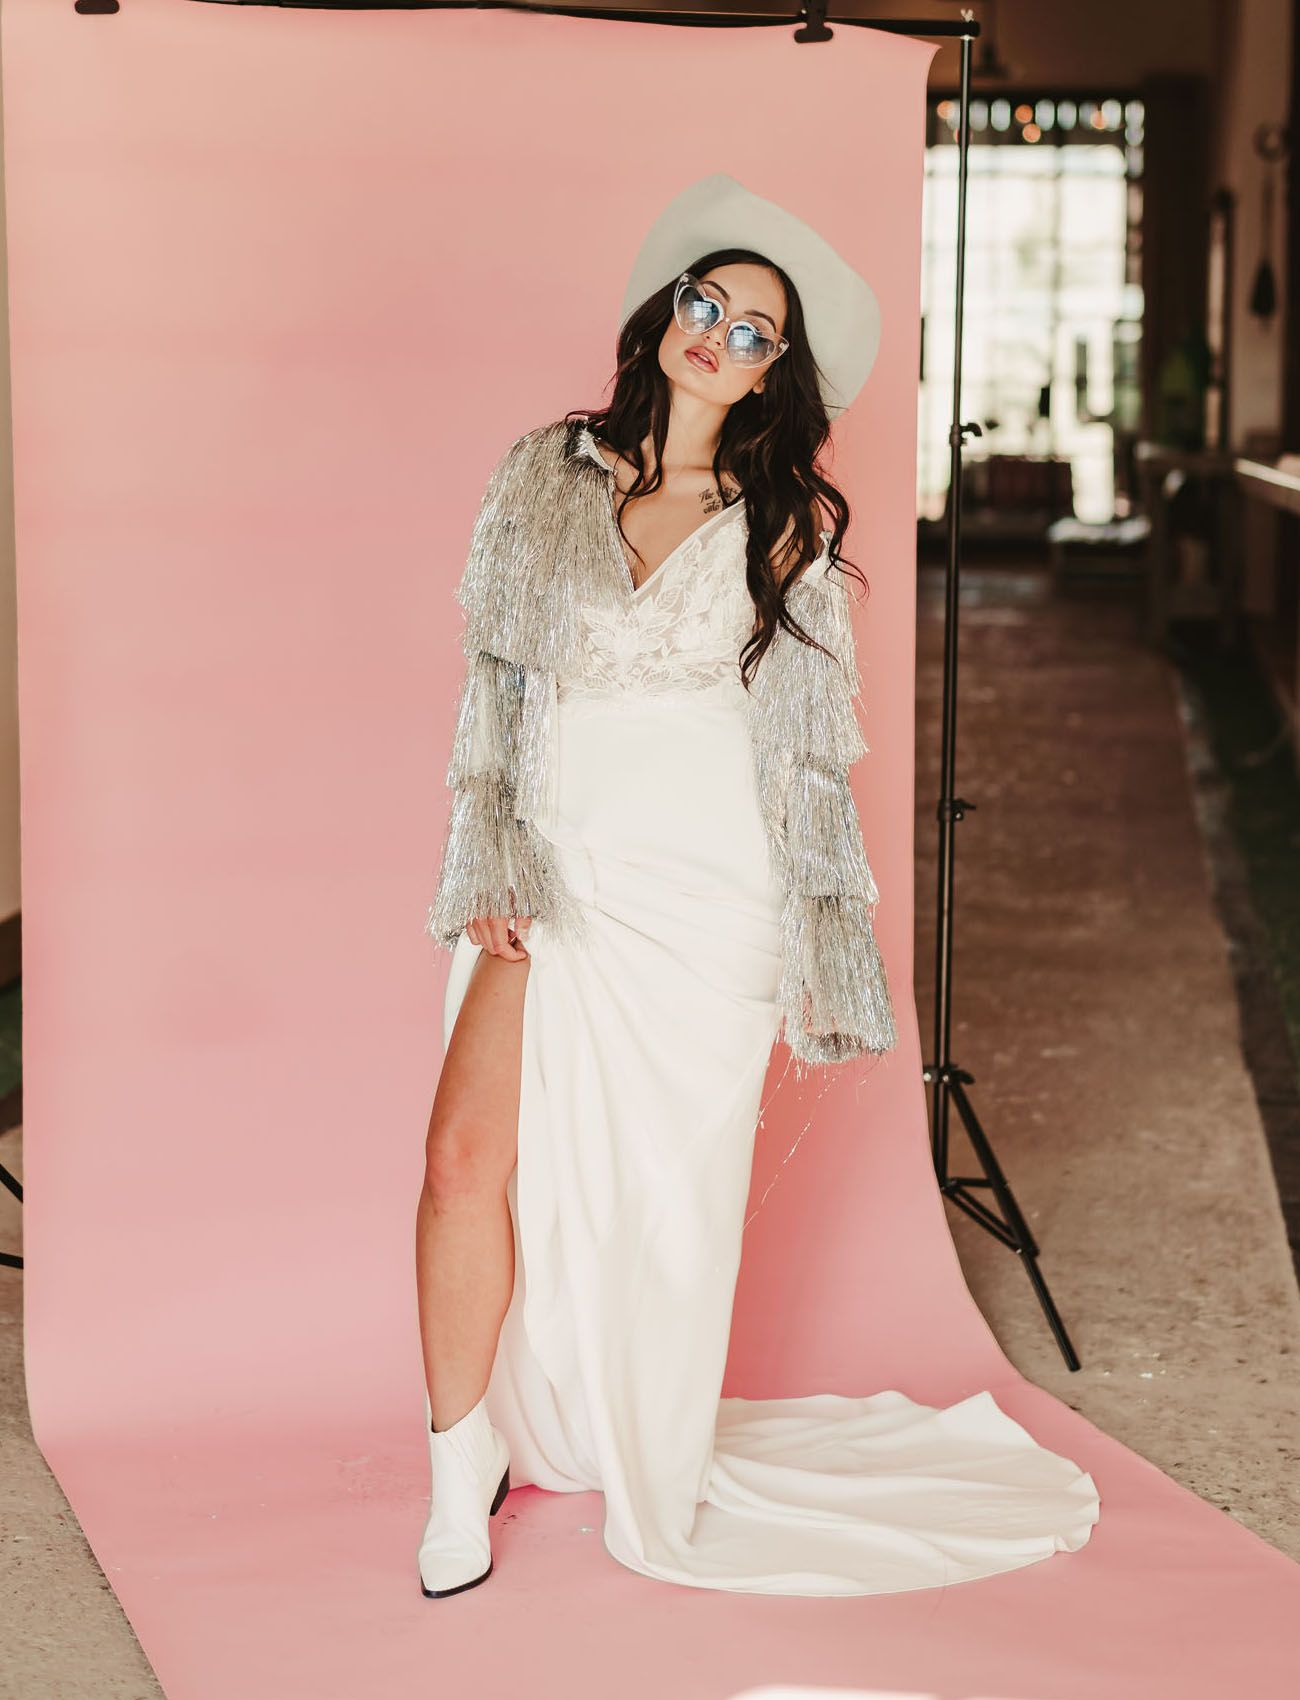 A Very Kacey Wedding Day It S A Kacey Musgraves Wedding